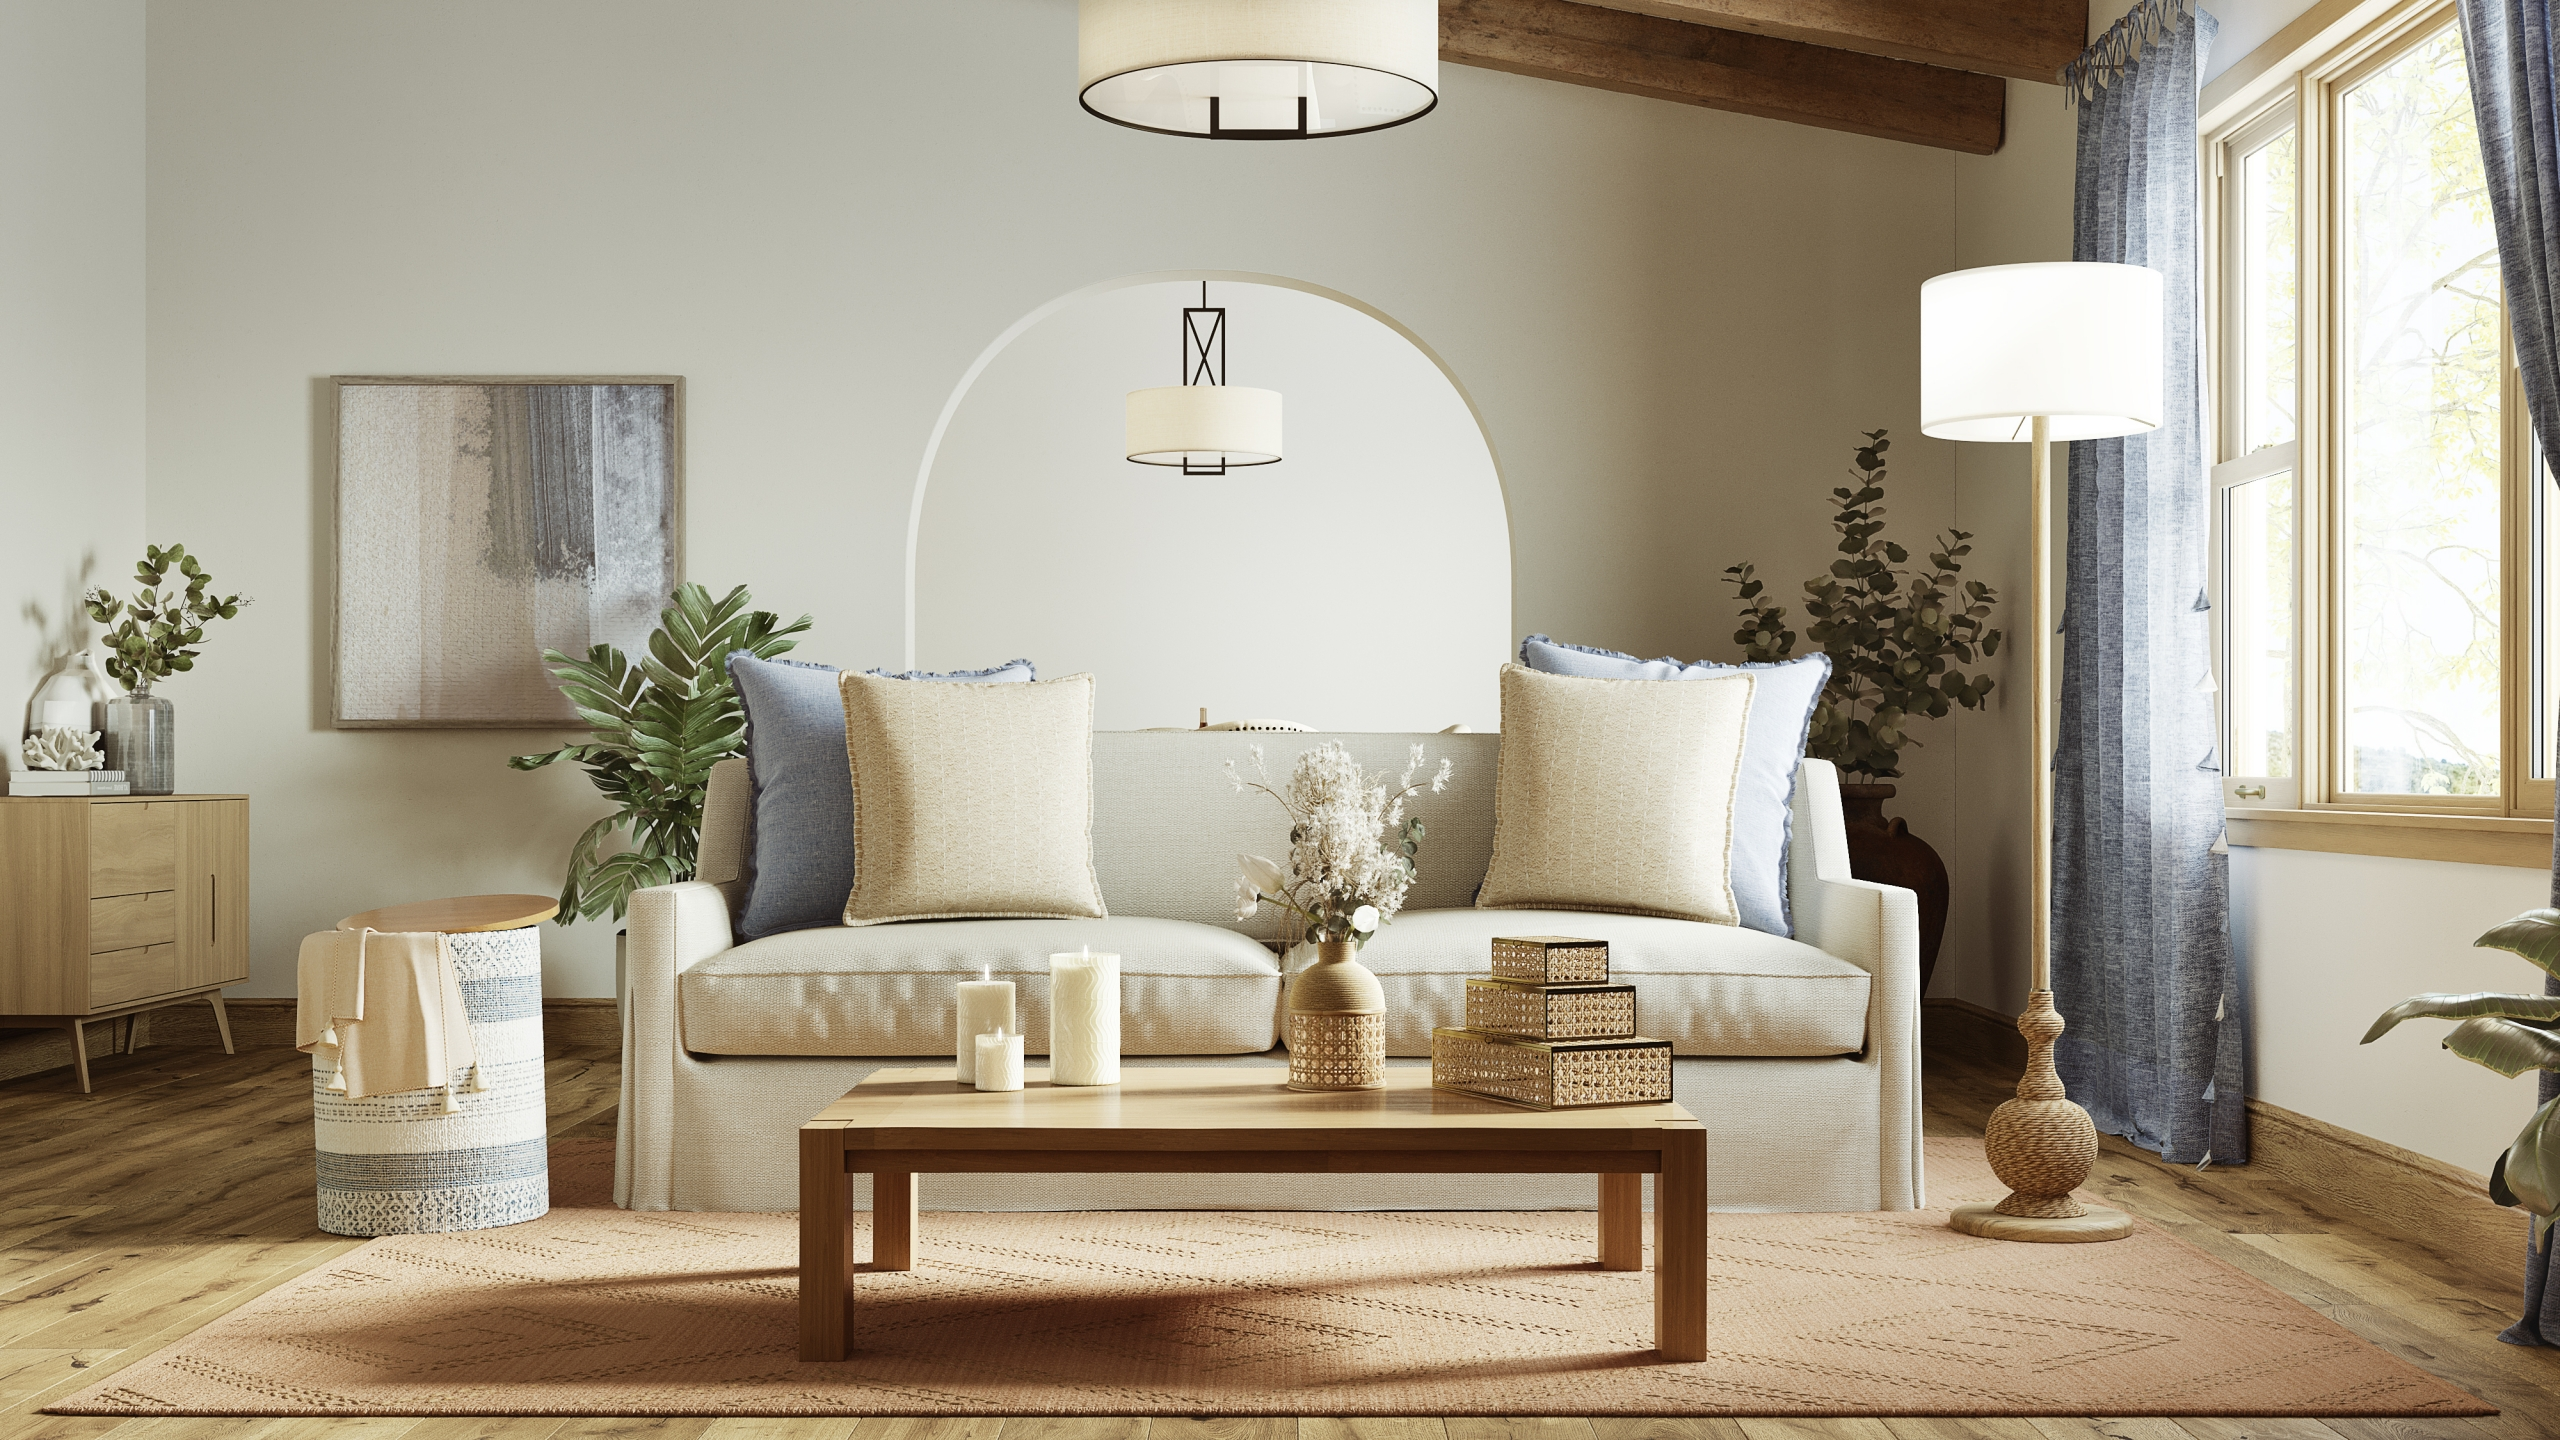 Anaya Furniture and Decor Lifestyle 3D Images